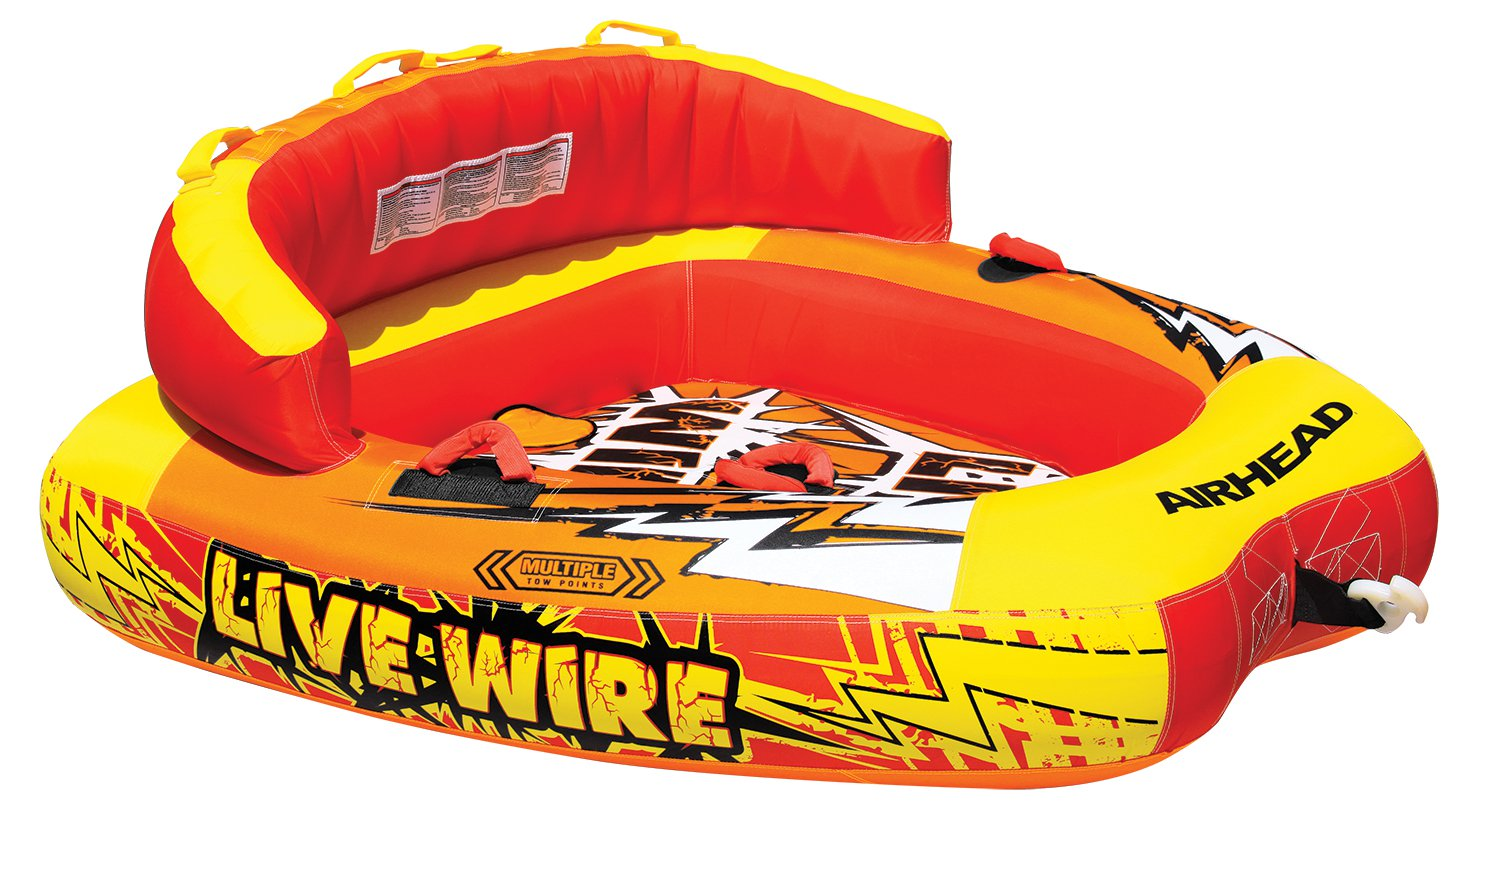 New AIRHEAD AHLW-2 Live Wire 2 Inflatable 1-2 Rider Boat Towable Lake Water Tube by